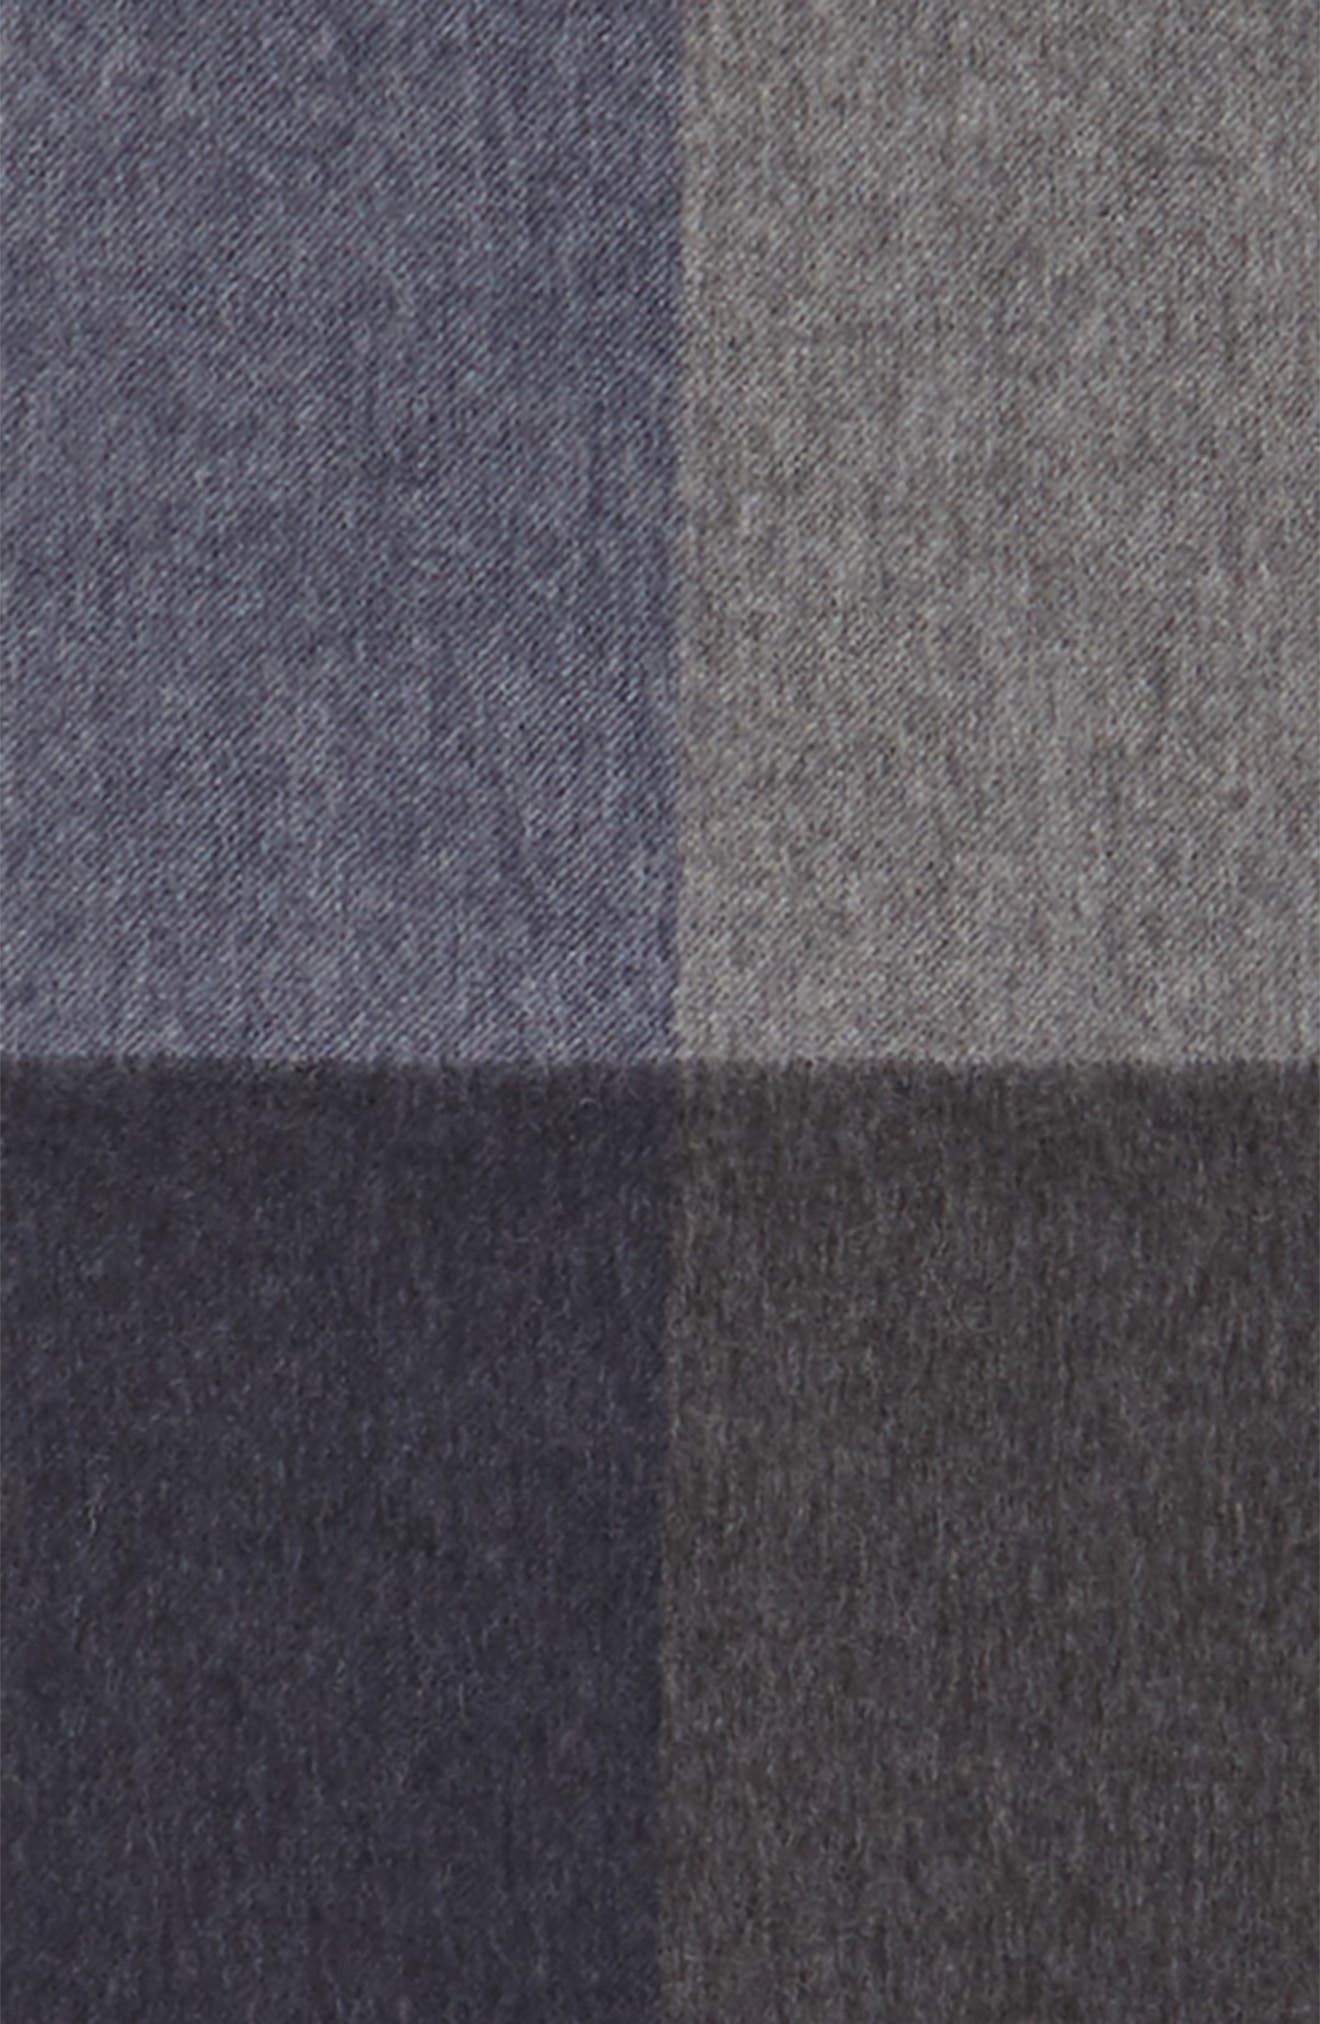 Colorblock Wool Scarf,                             Alternate thumbnail 3, color,                             Navy Midnight - Grey